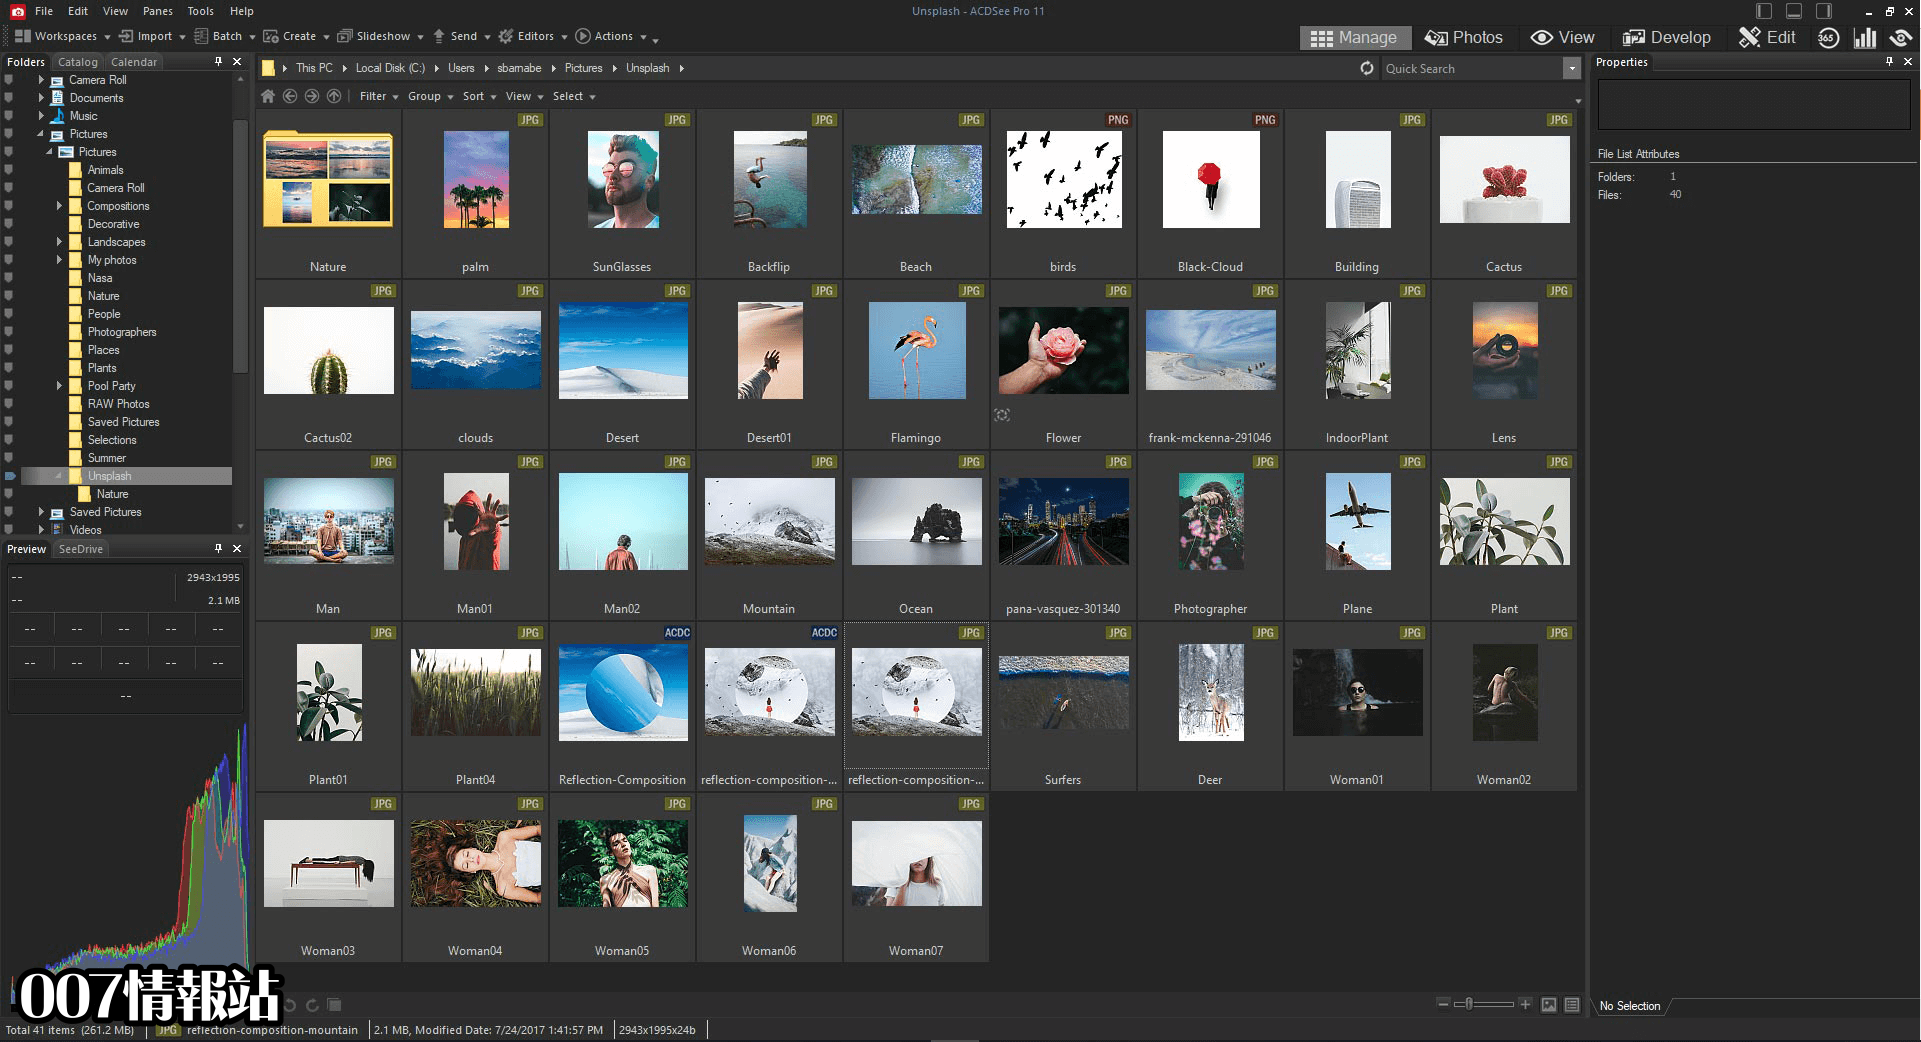 ACDSee Photo Studio Professional (32-bit) Screenshot 4